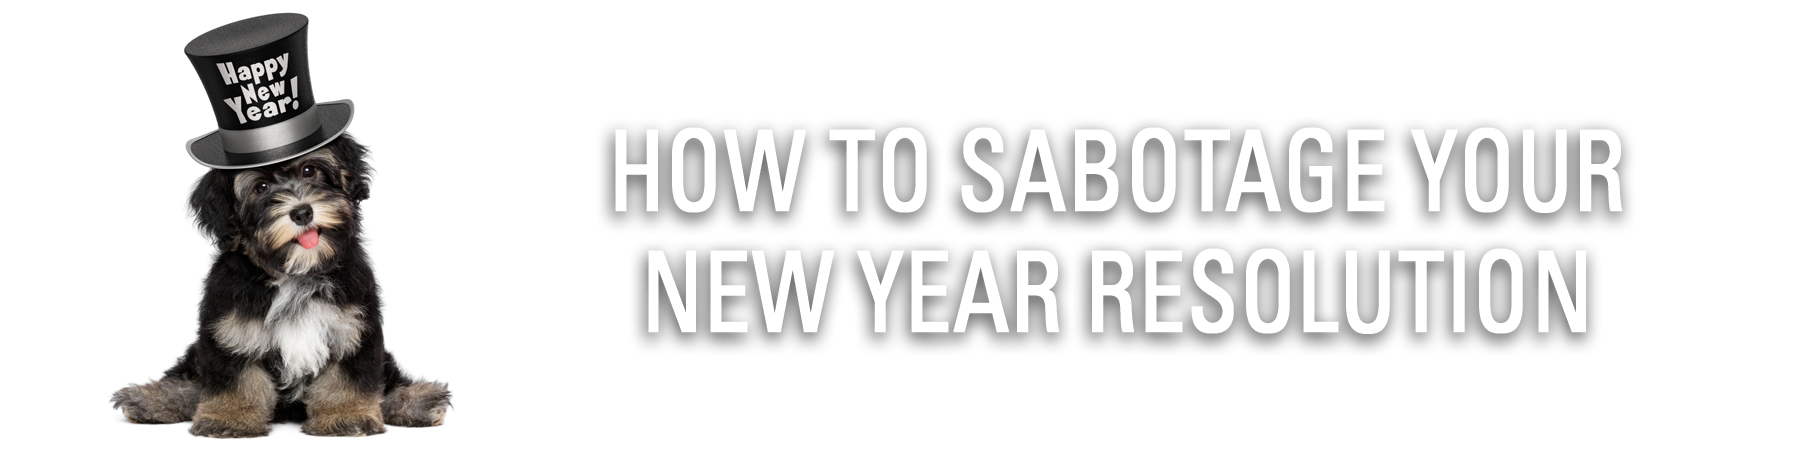 How To Sabotage Your New Year Resolution